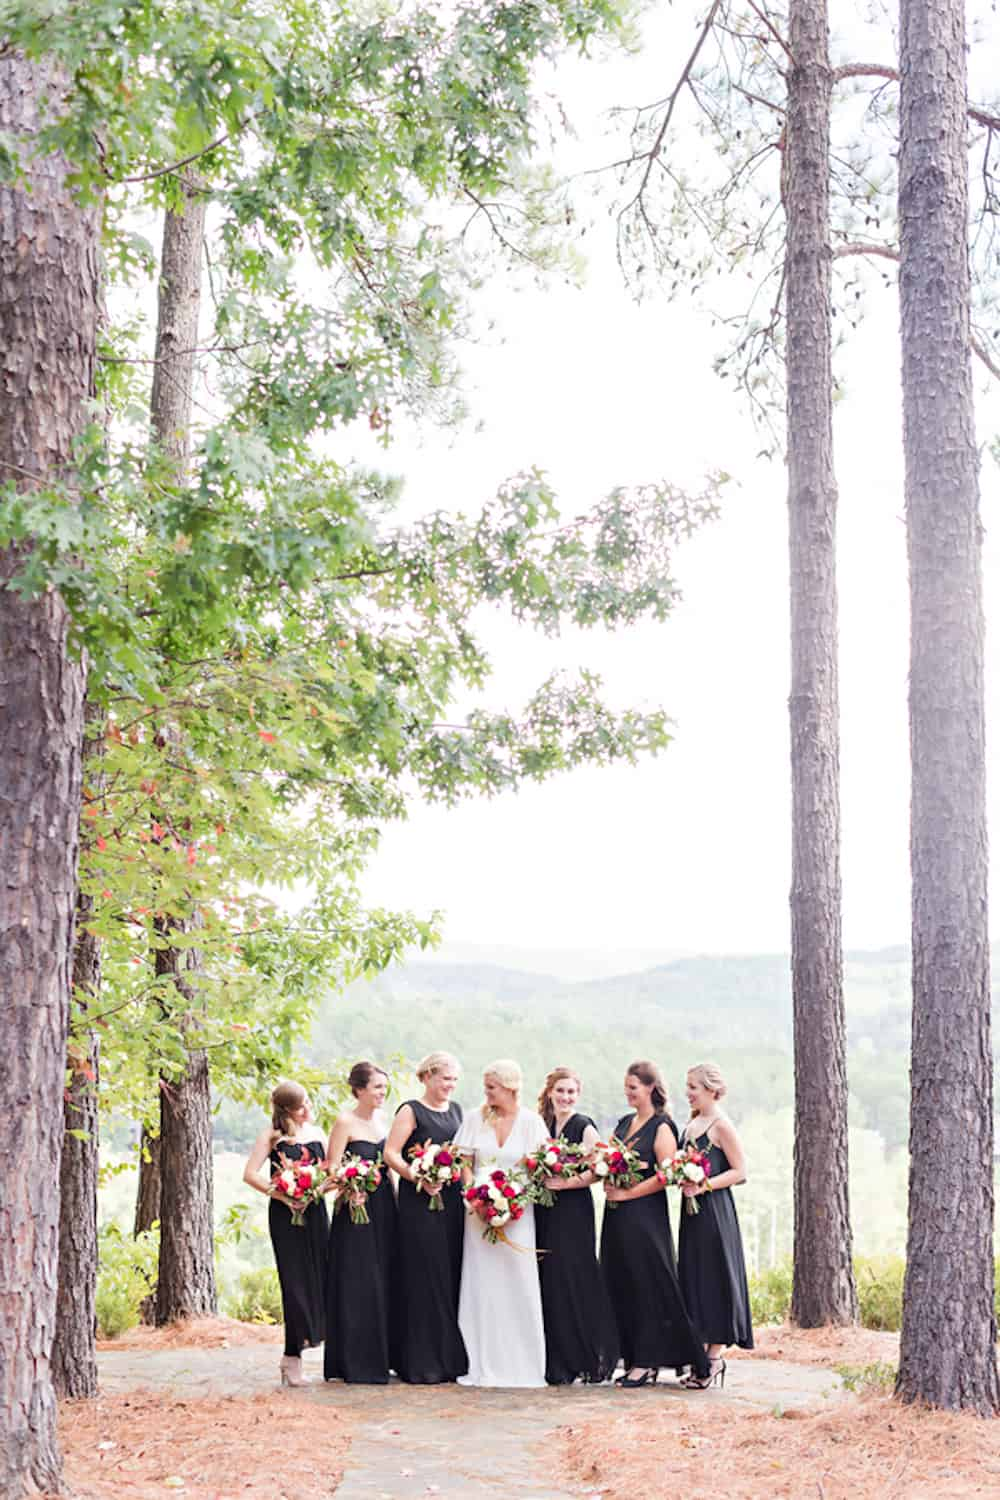 4A Gaddy_Names_JenniferStuartPhotography_SarahLukeWEDDING95_low